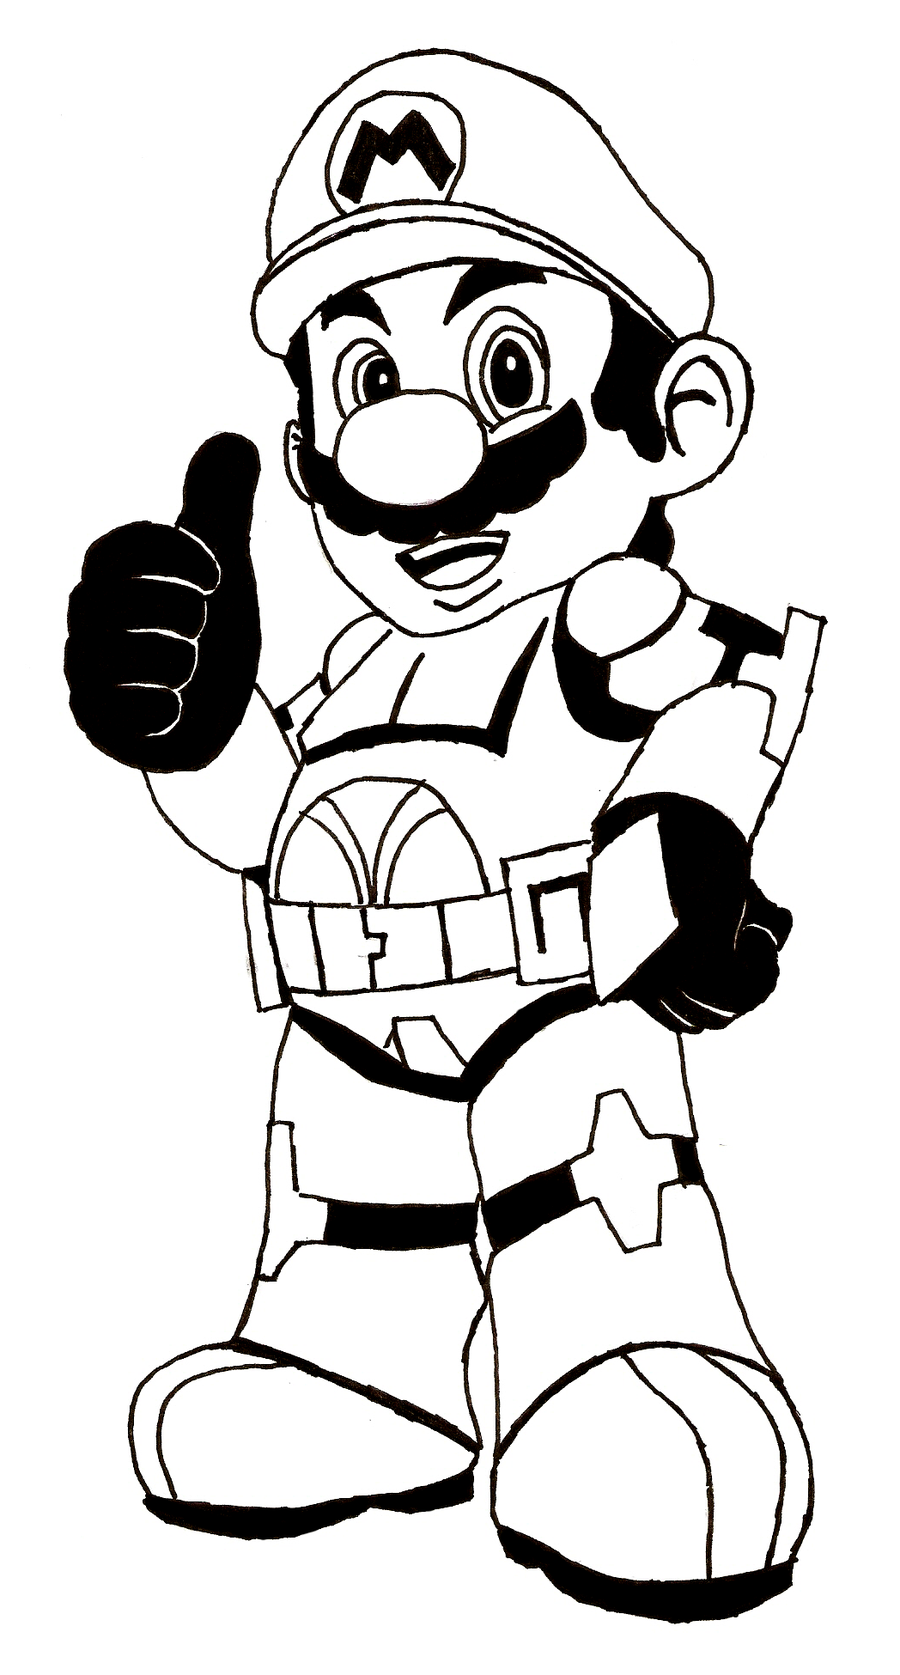 This is a graphic of Nerdy Printable Mario Coloring Pages